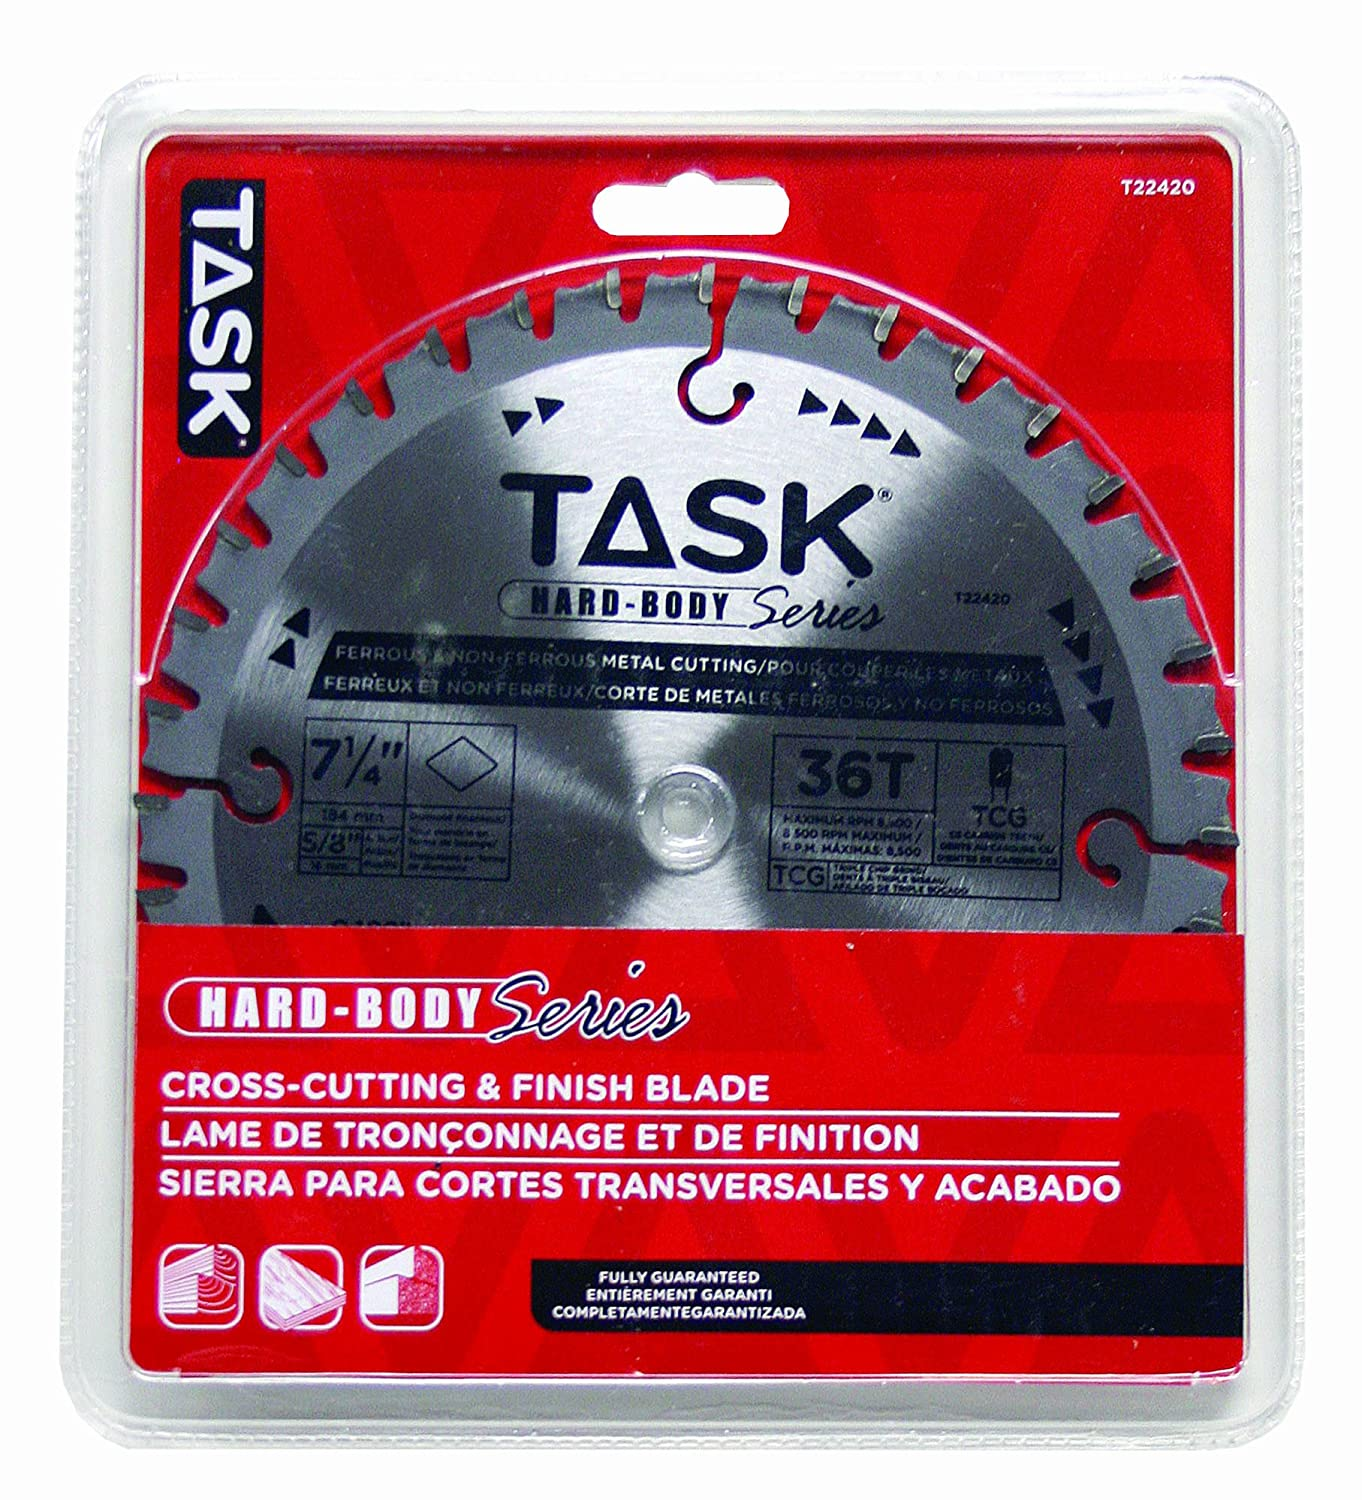 Task Tools T22420 7-1/4-Inch Hard Body Metal Cutting Carbide Saw Blade, Ferrous and Non-Ferrous with 5/8-Inch Arbor - Circular Saw Blades - Amazon.com